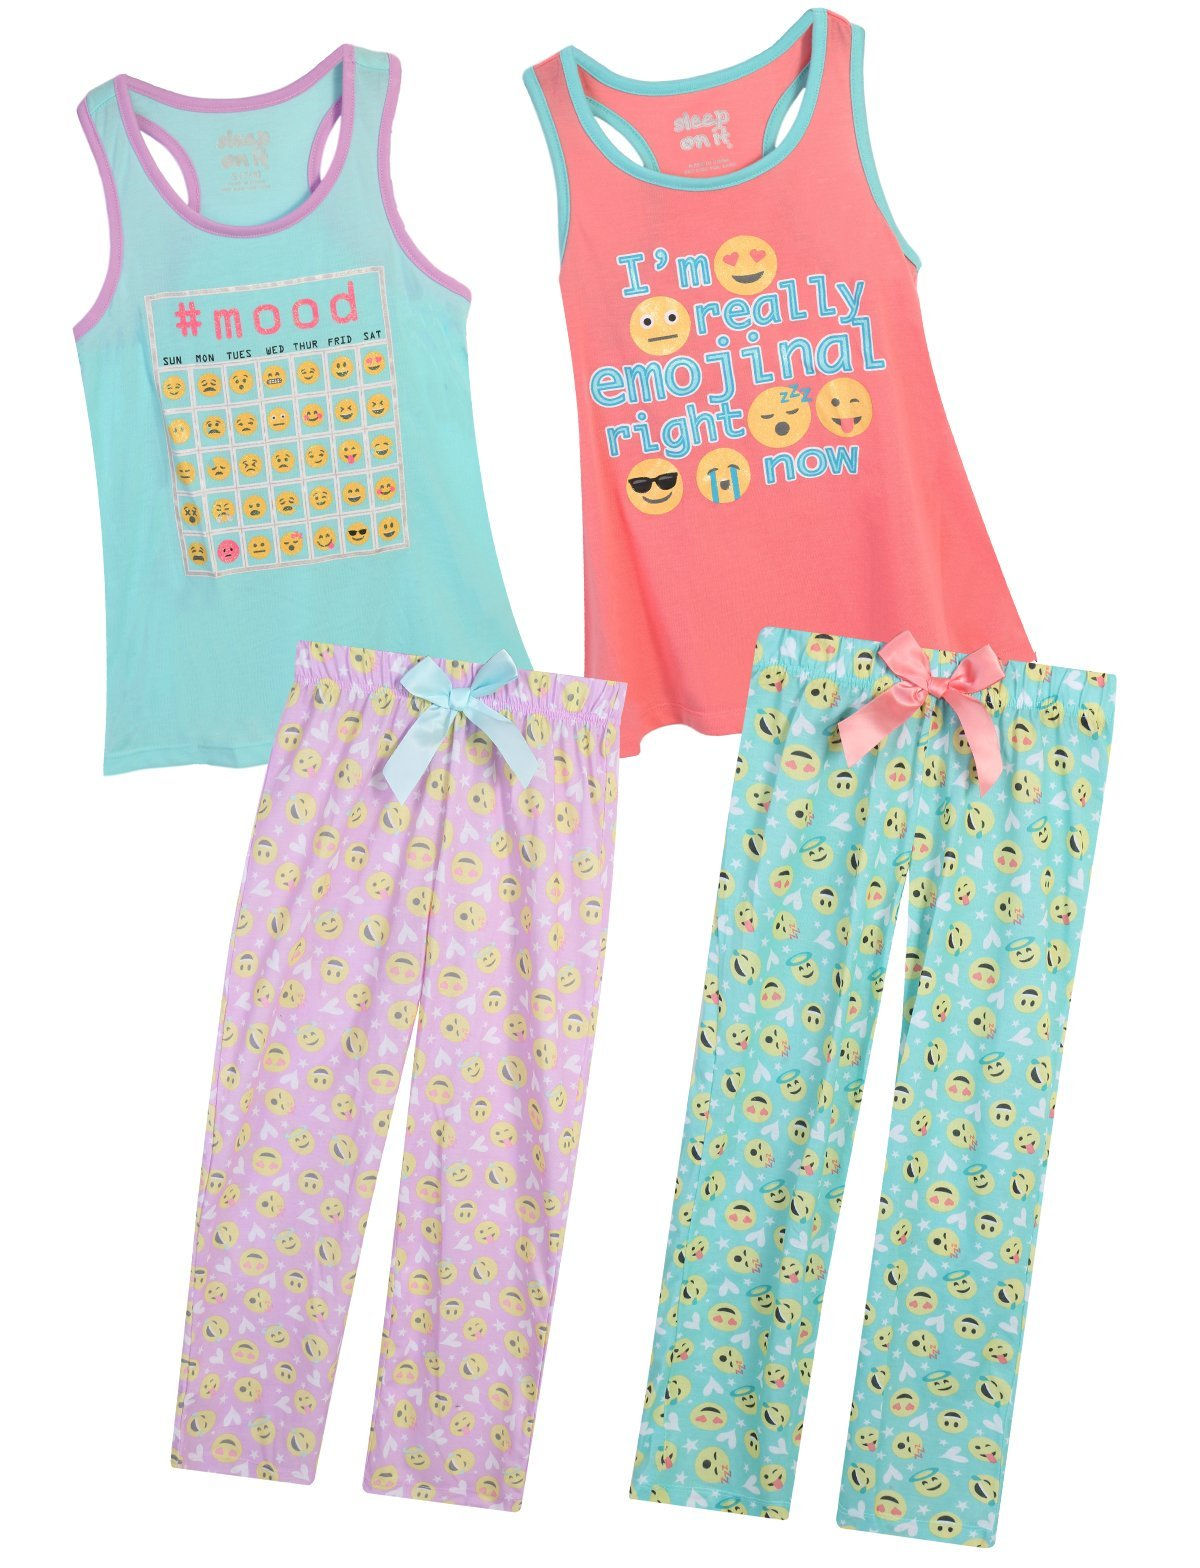 Sleep On It Girls 4 Piece Tank Top and Pant Spring Pajama (2 Full Sets) Emoji, Size 7/8'